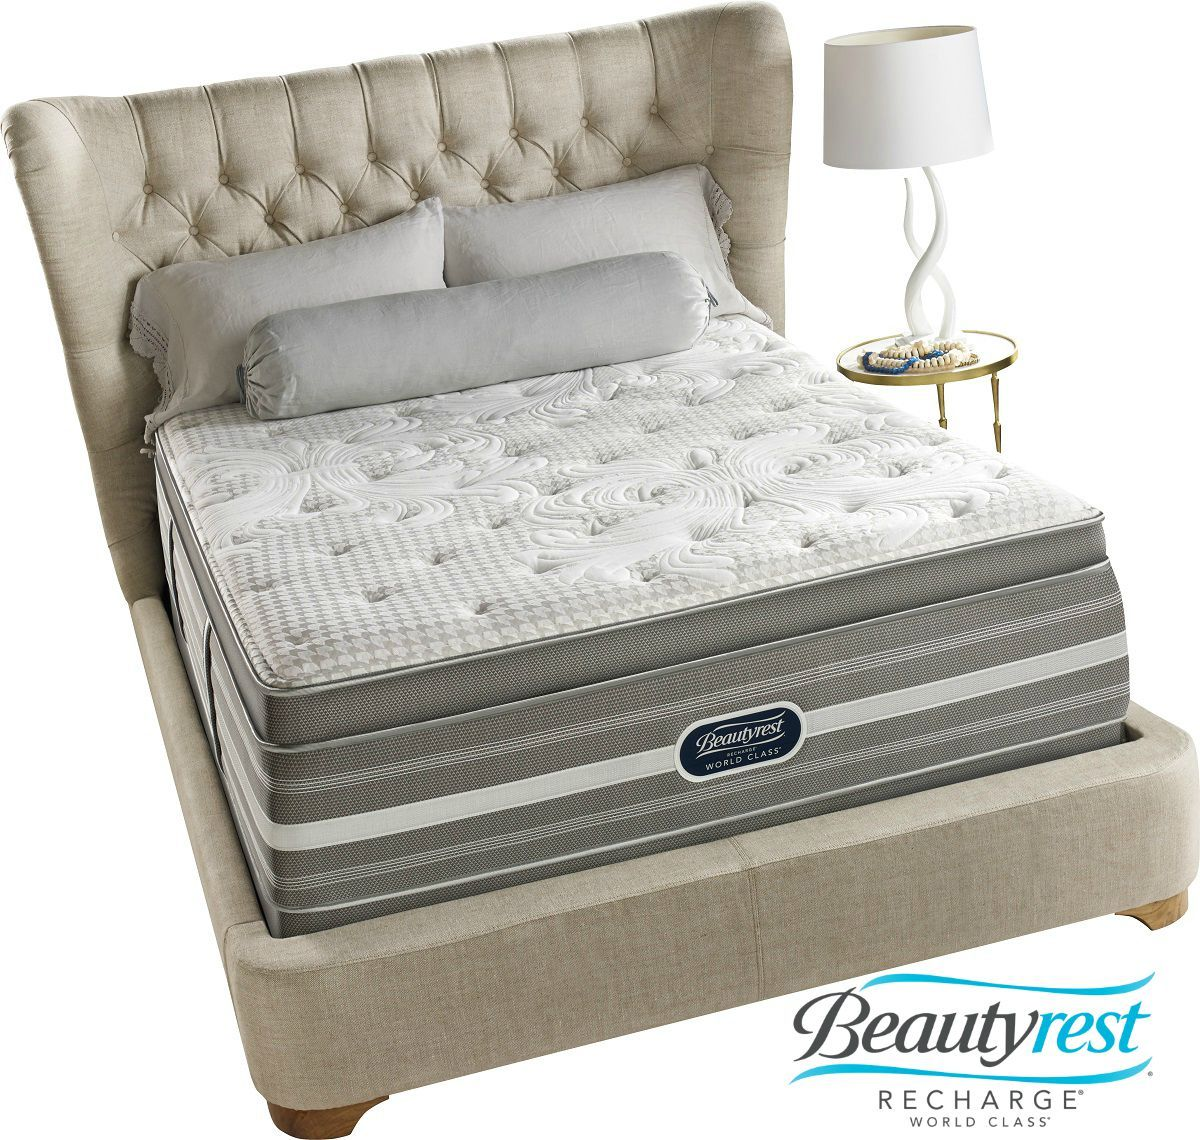 As San Diego's Largest Independant Mattress Dealer, we are